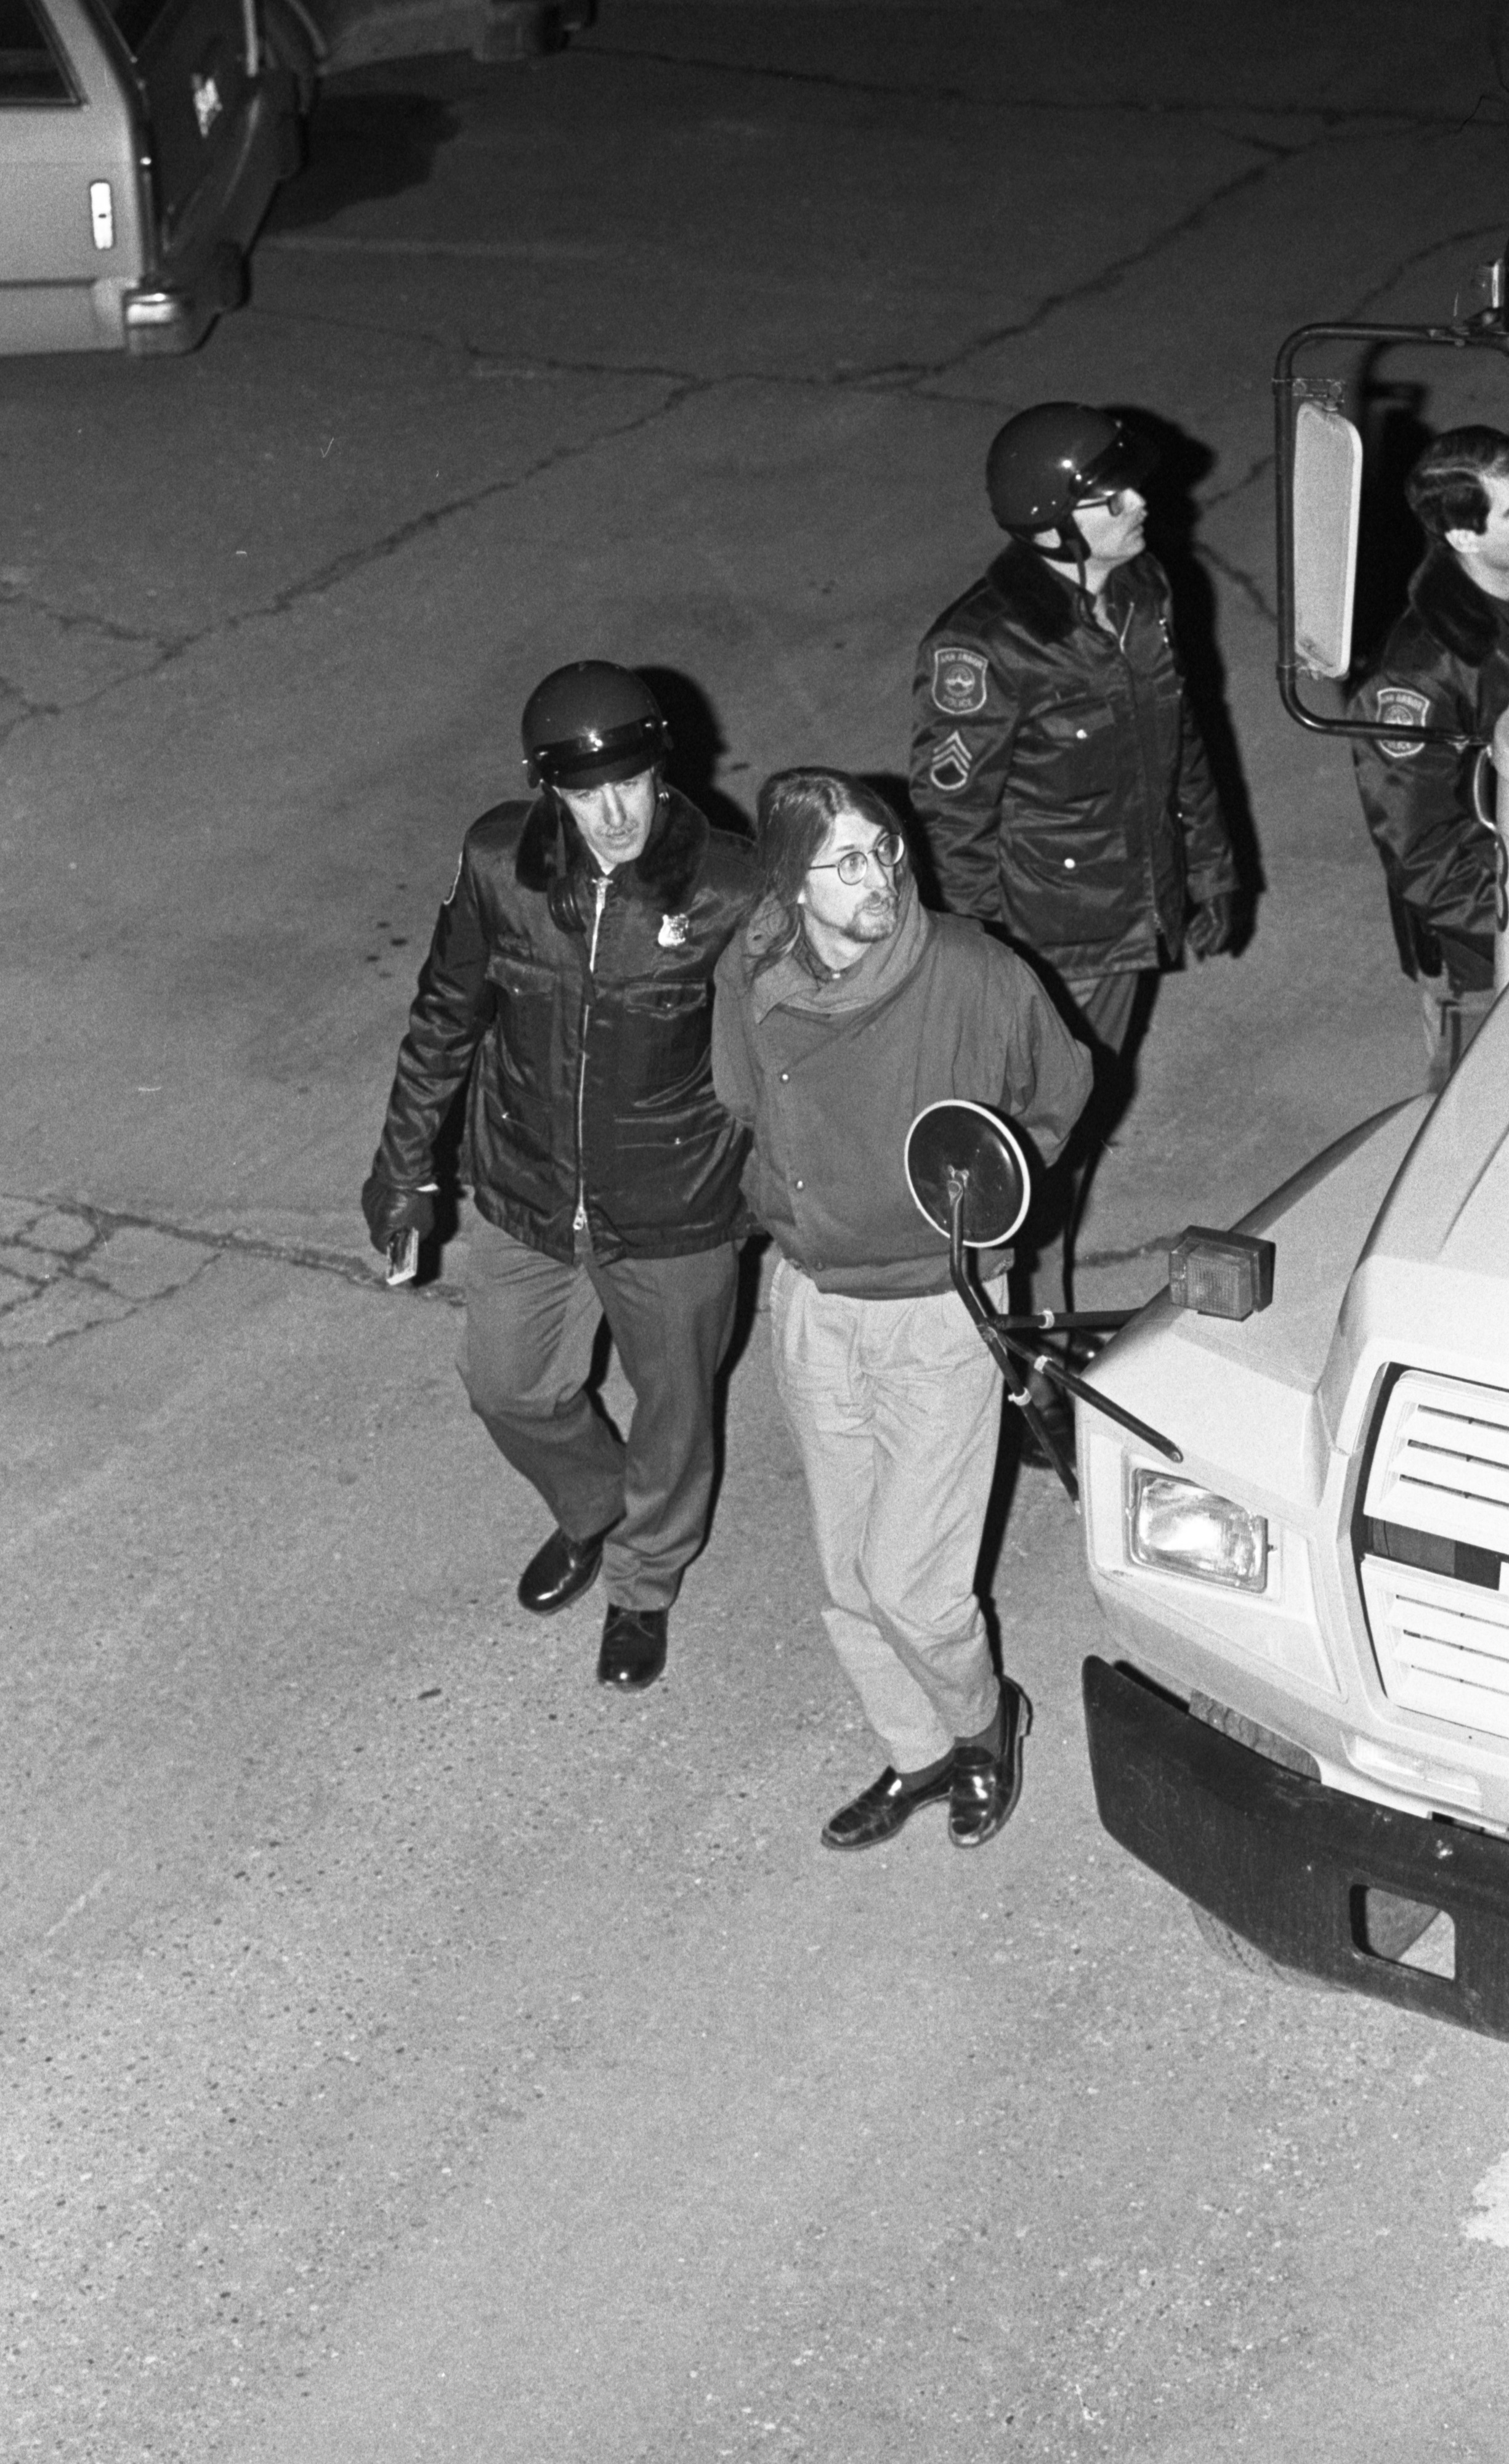 Ann Arbor Police Escort Arrested Protesters To City Hall, March 1986 image